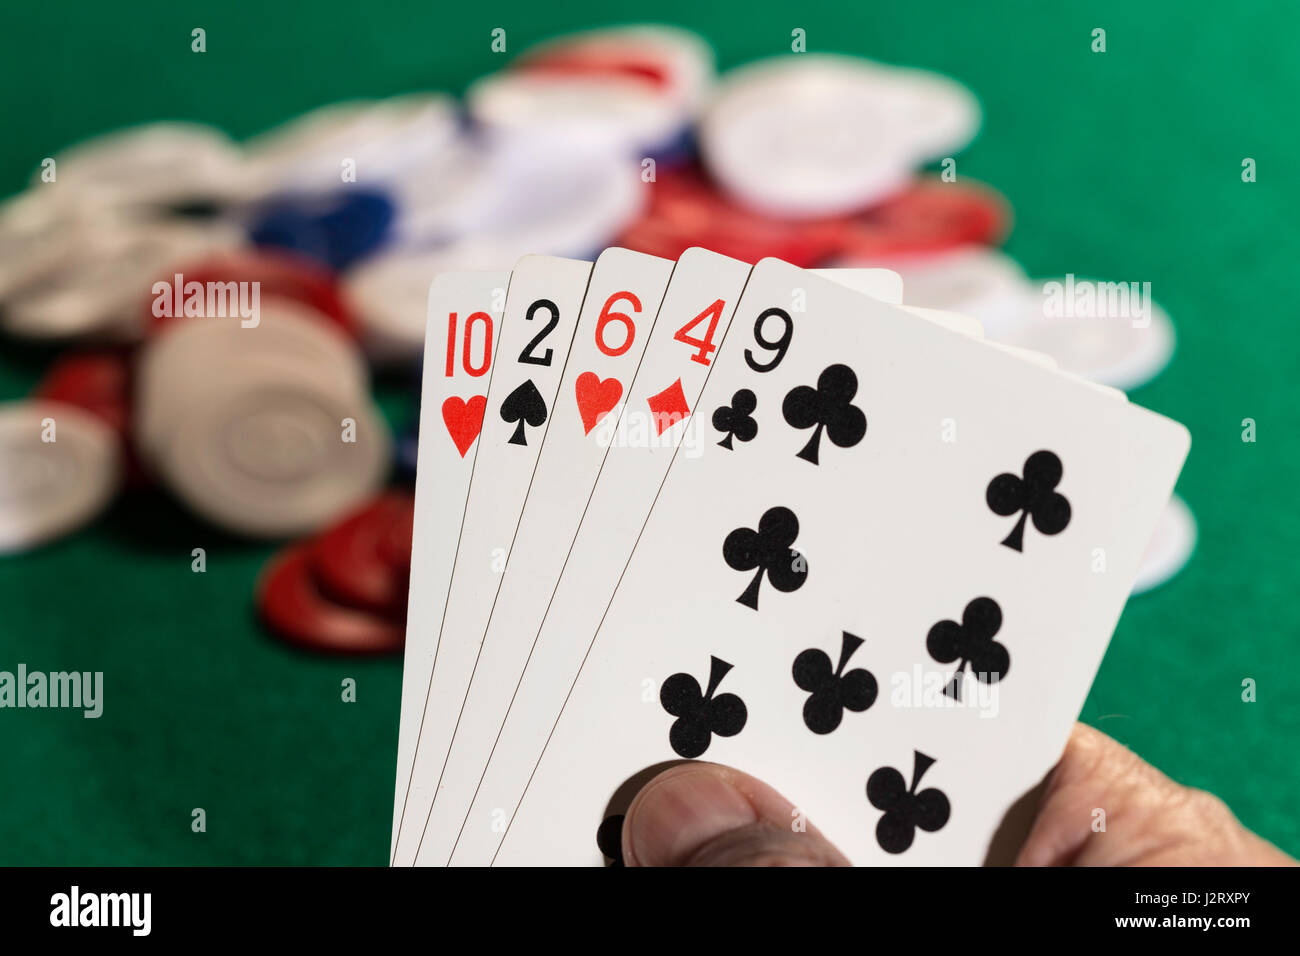 Man Playing Poker - Stock Image